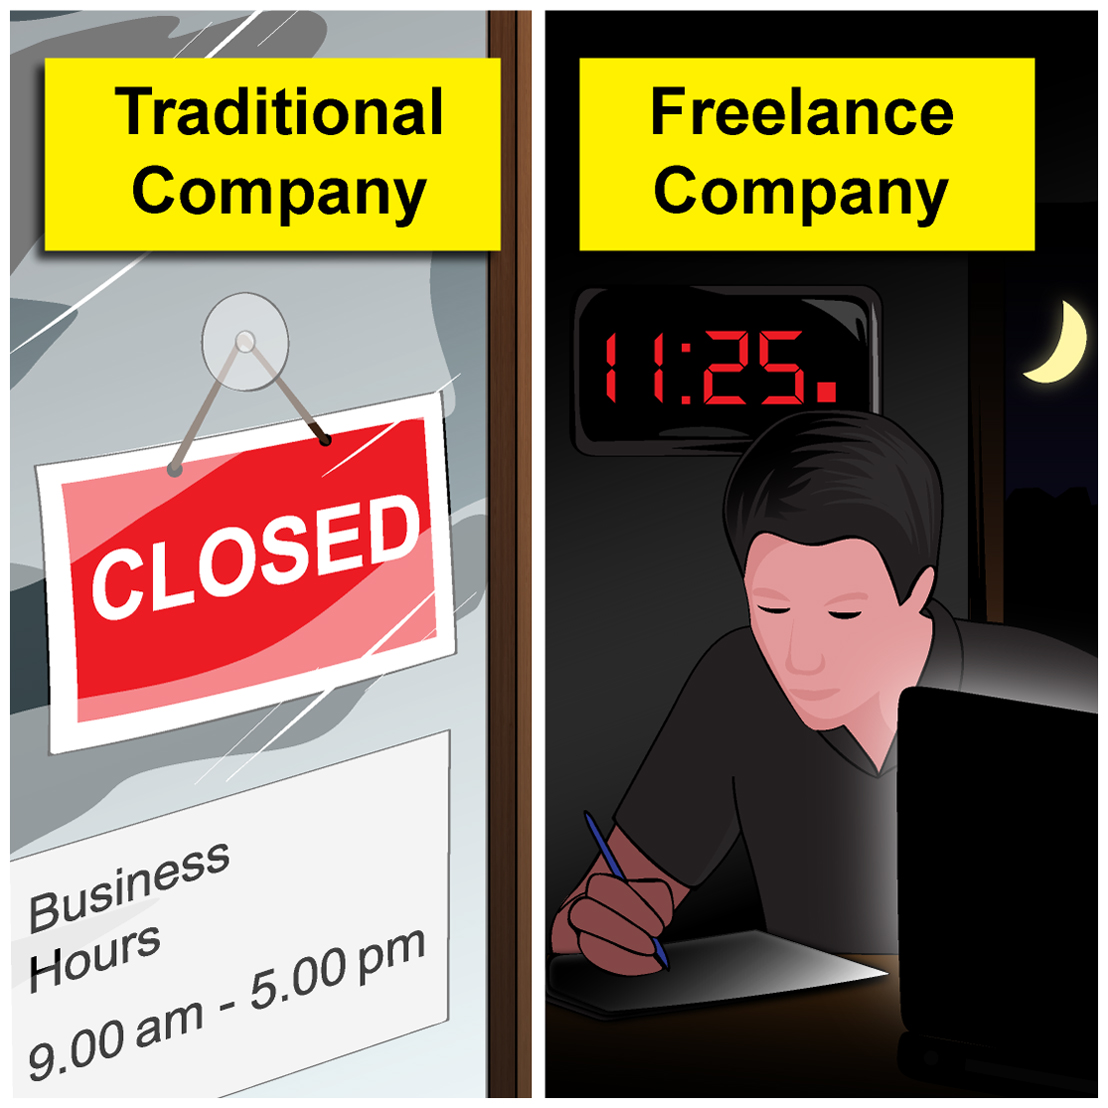 Traditional Company Vs. Freelance Company